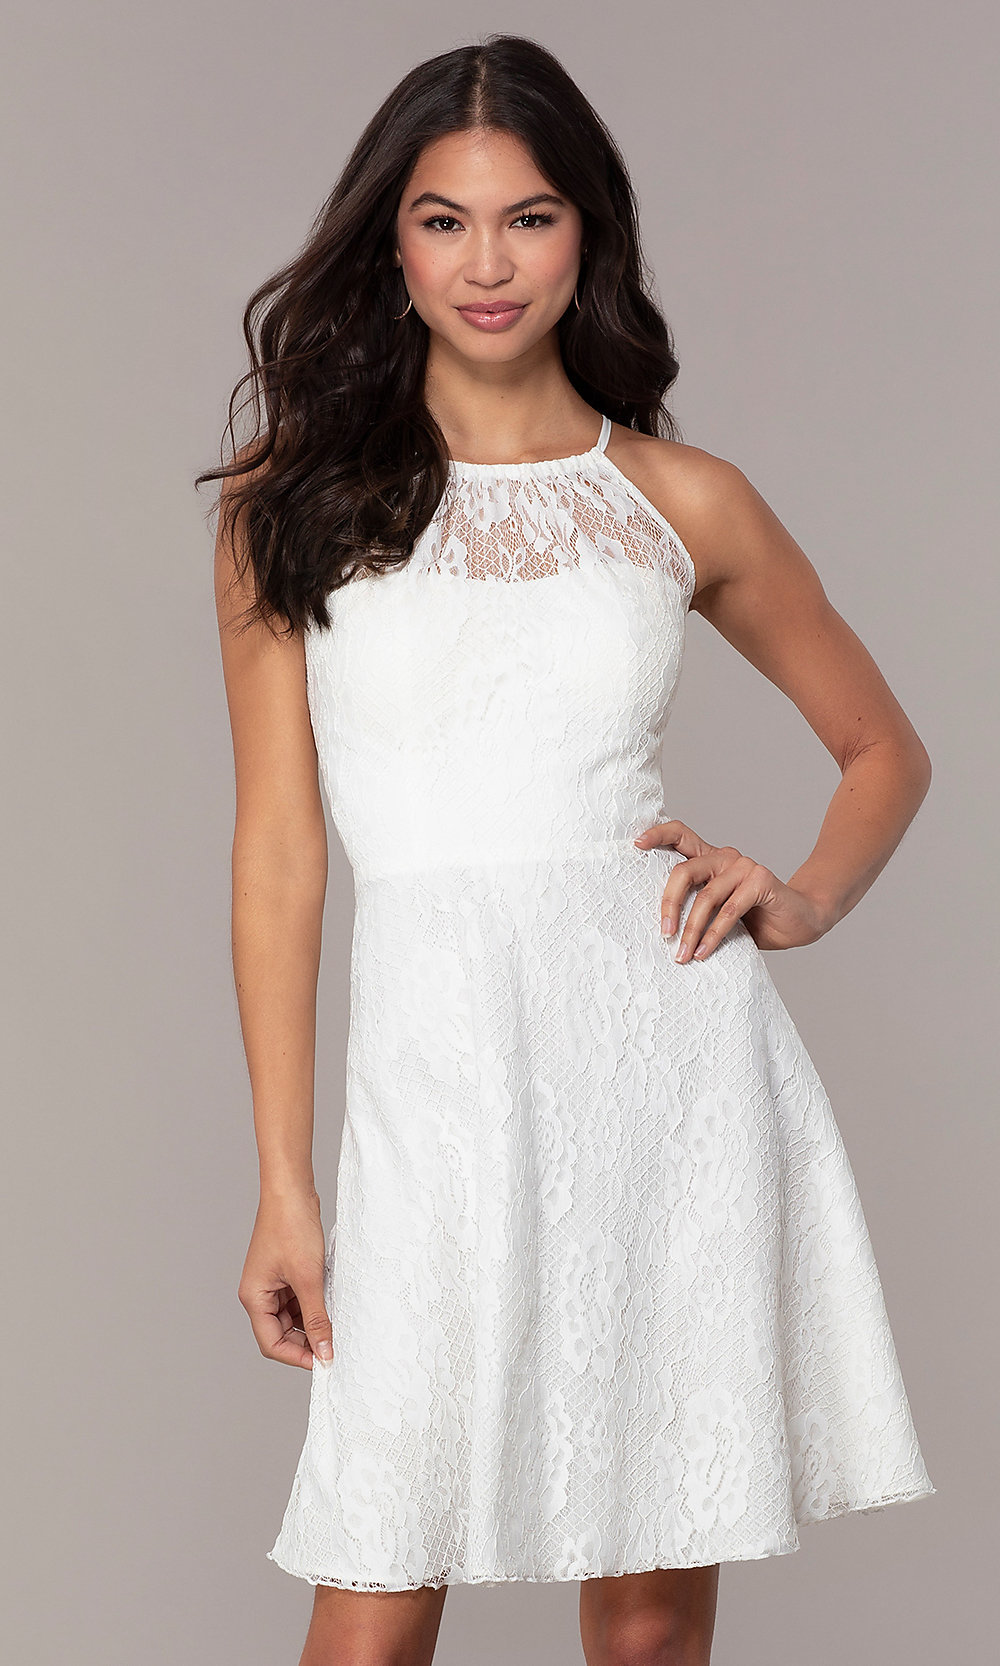 Short White Dresses On Sale